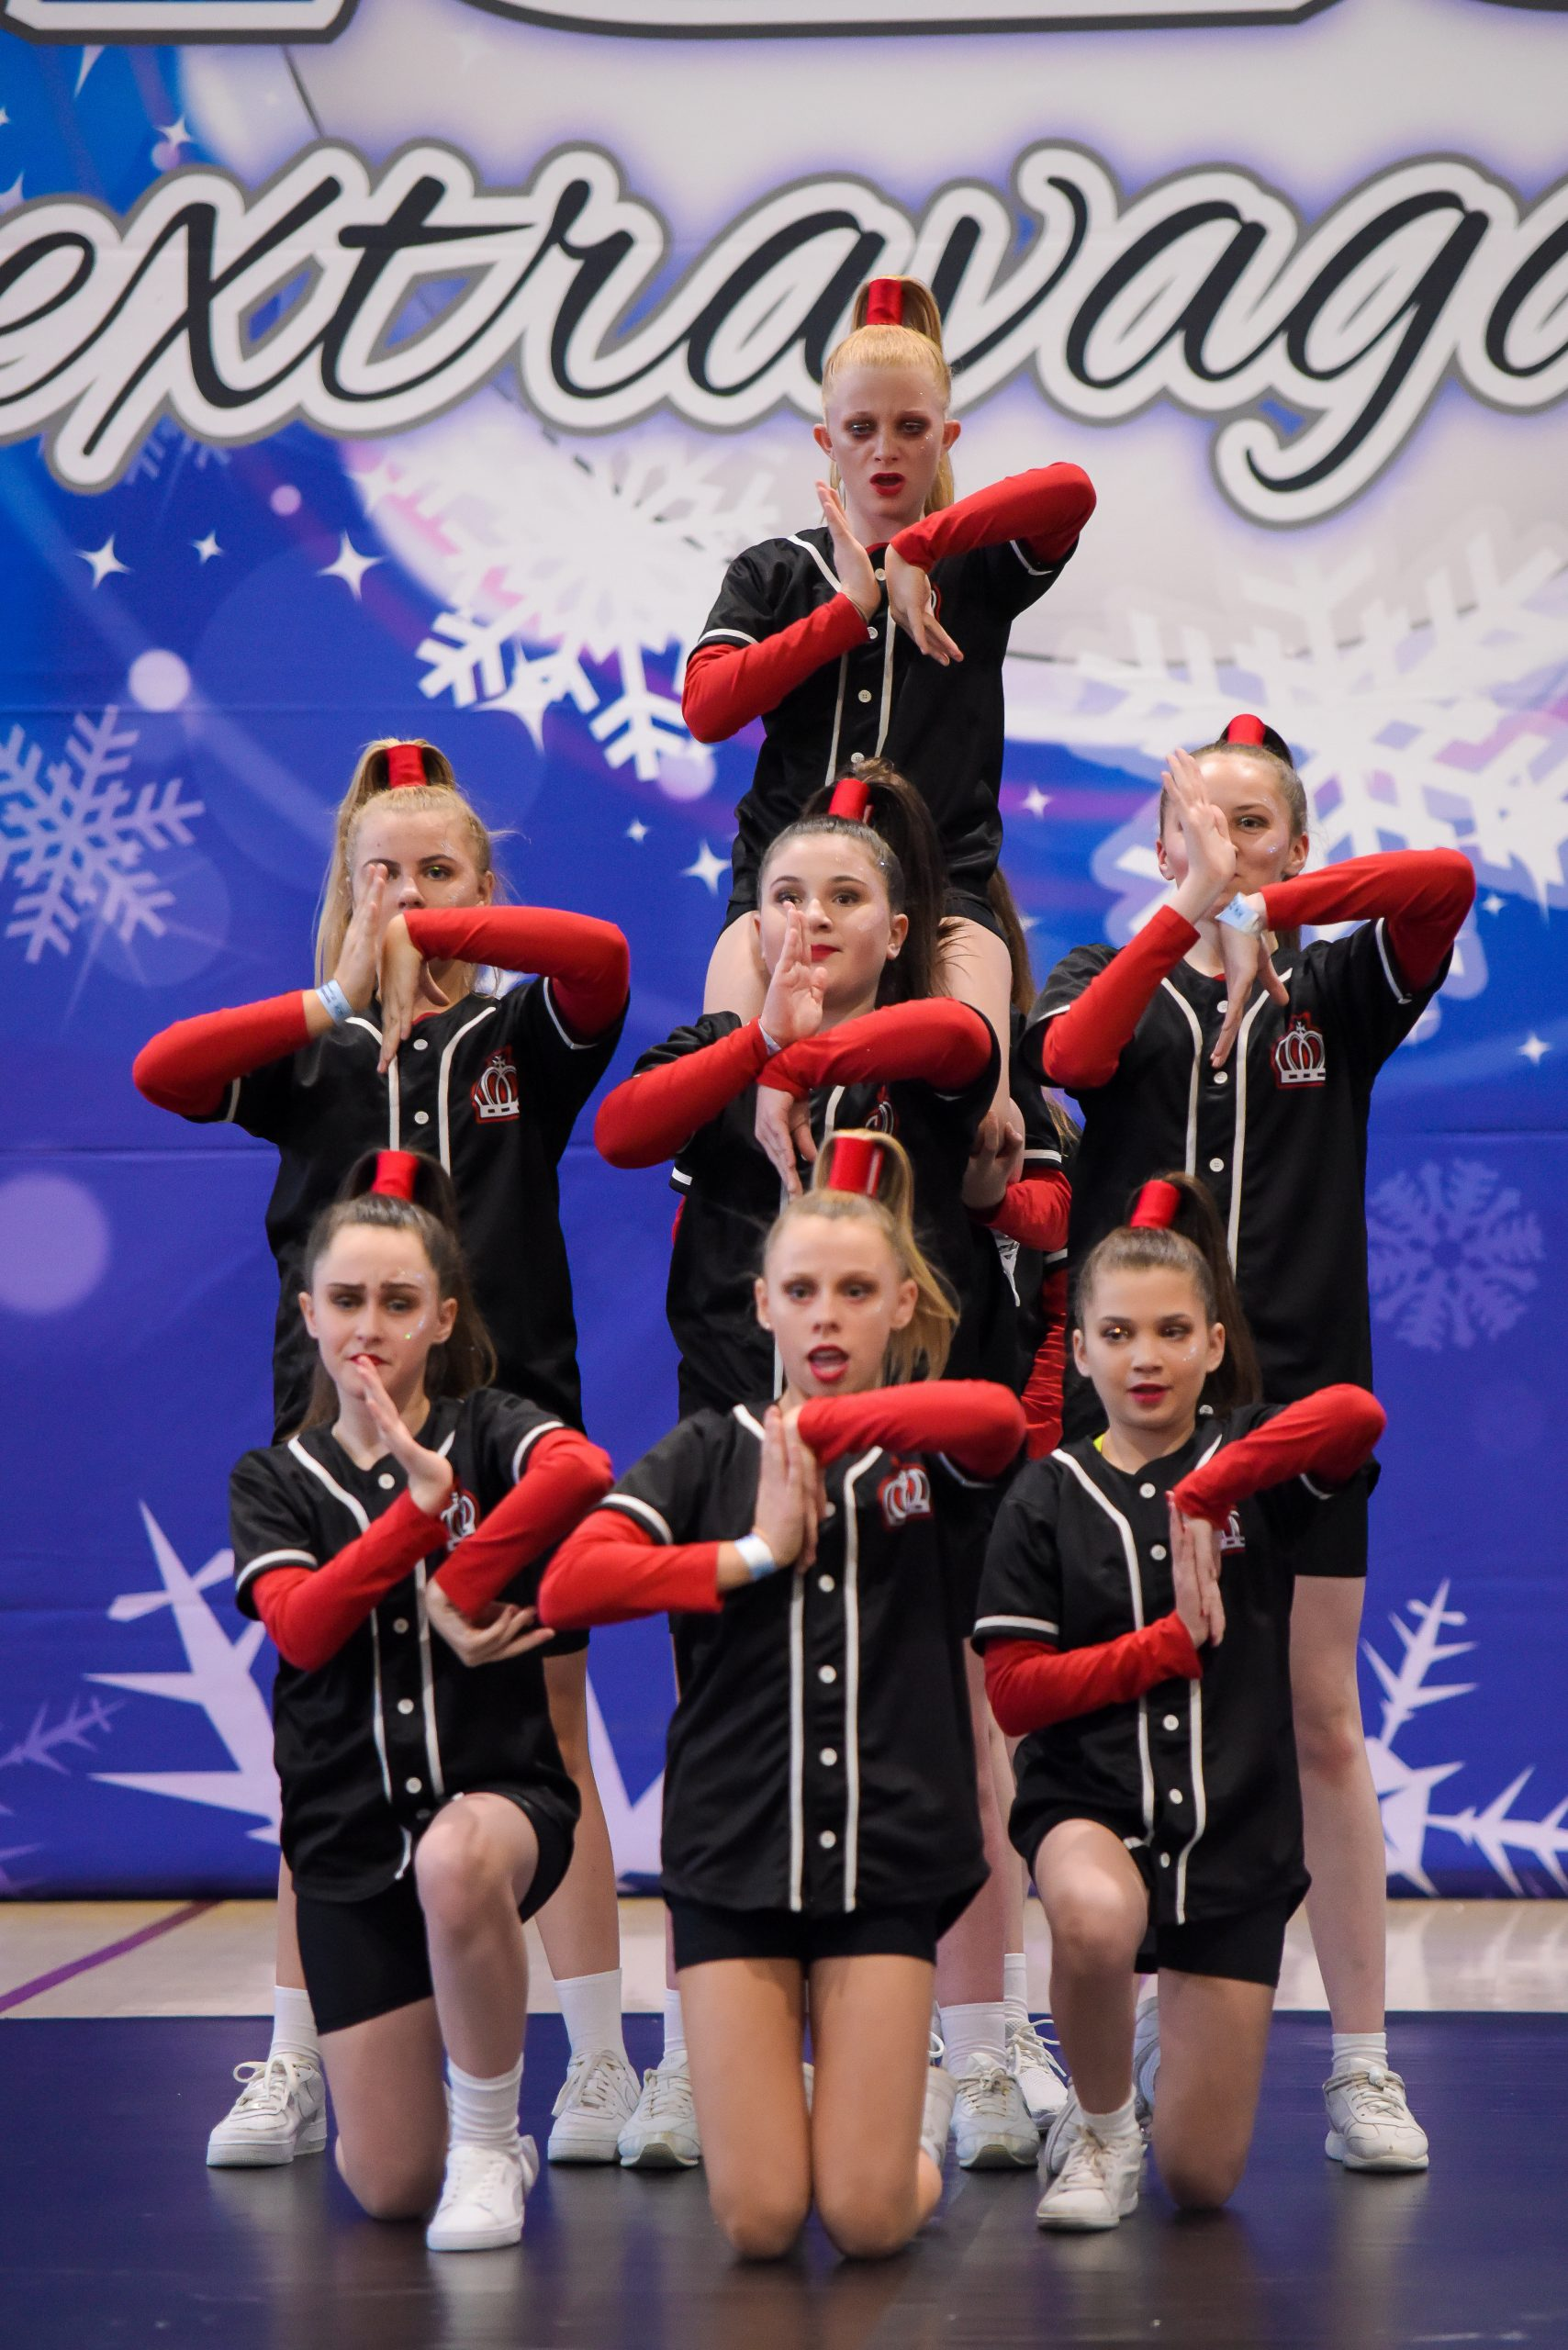 A hip hop team dressed in black and red compete on a dance floor